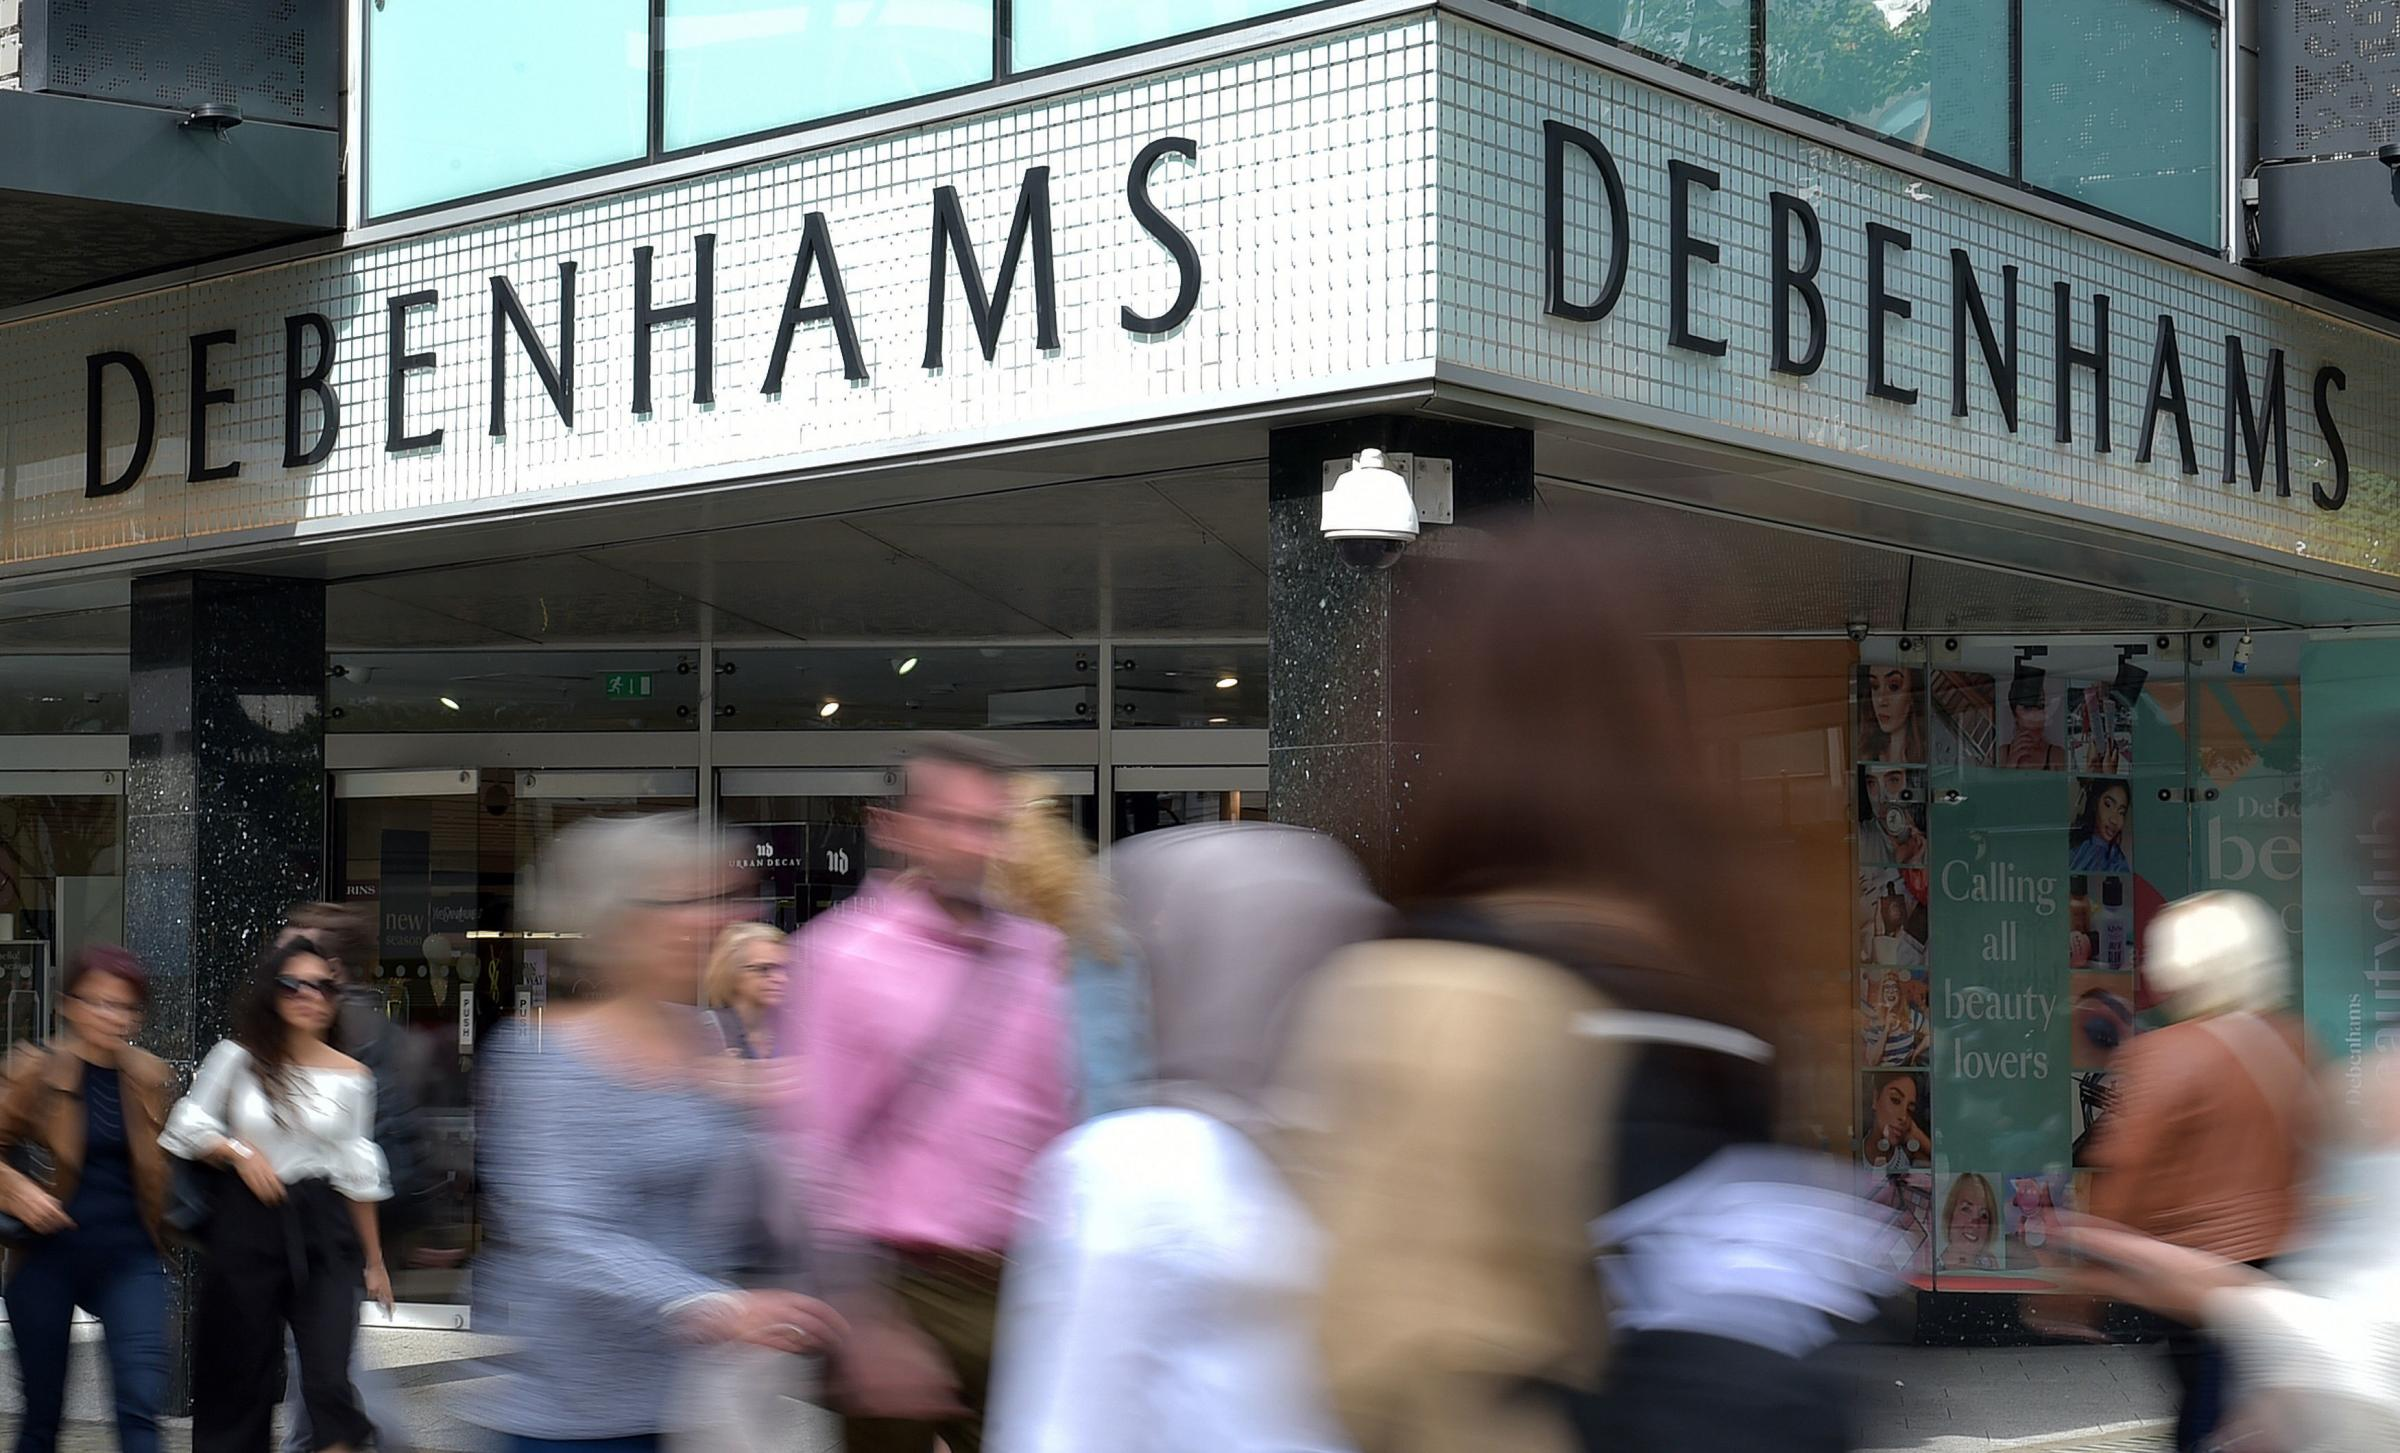 Debenhams has been placed into administration and the retailer's lenders have seized control of the company.